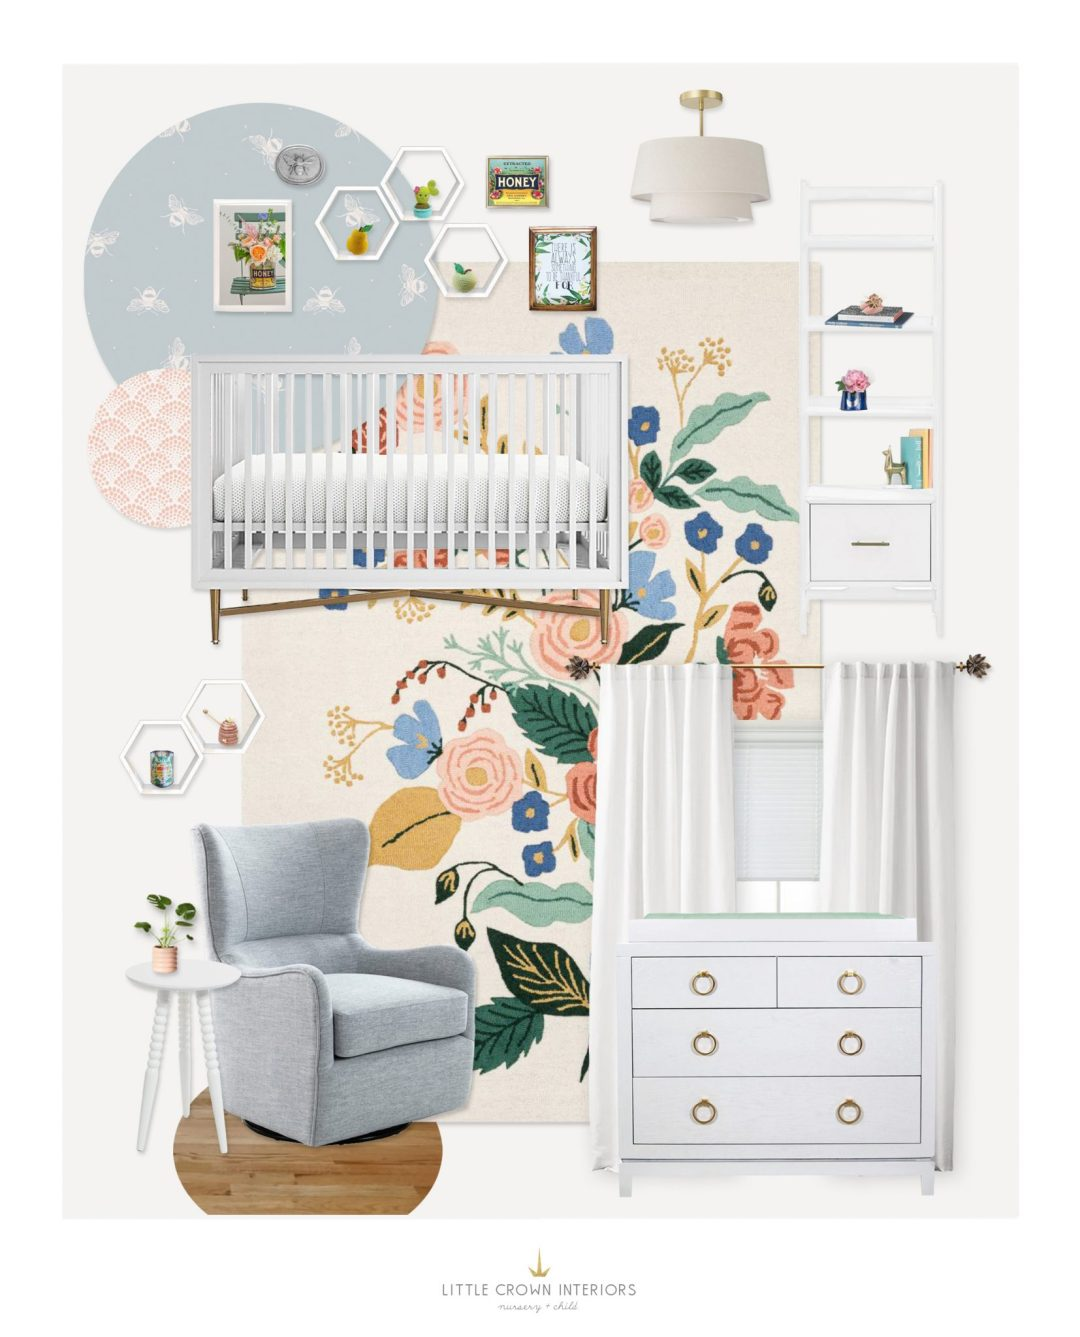 Floral Nursery E-Design by Little Crown Interiors